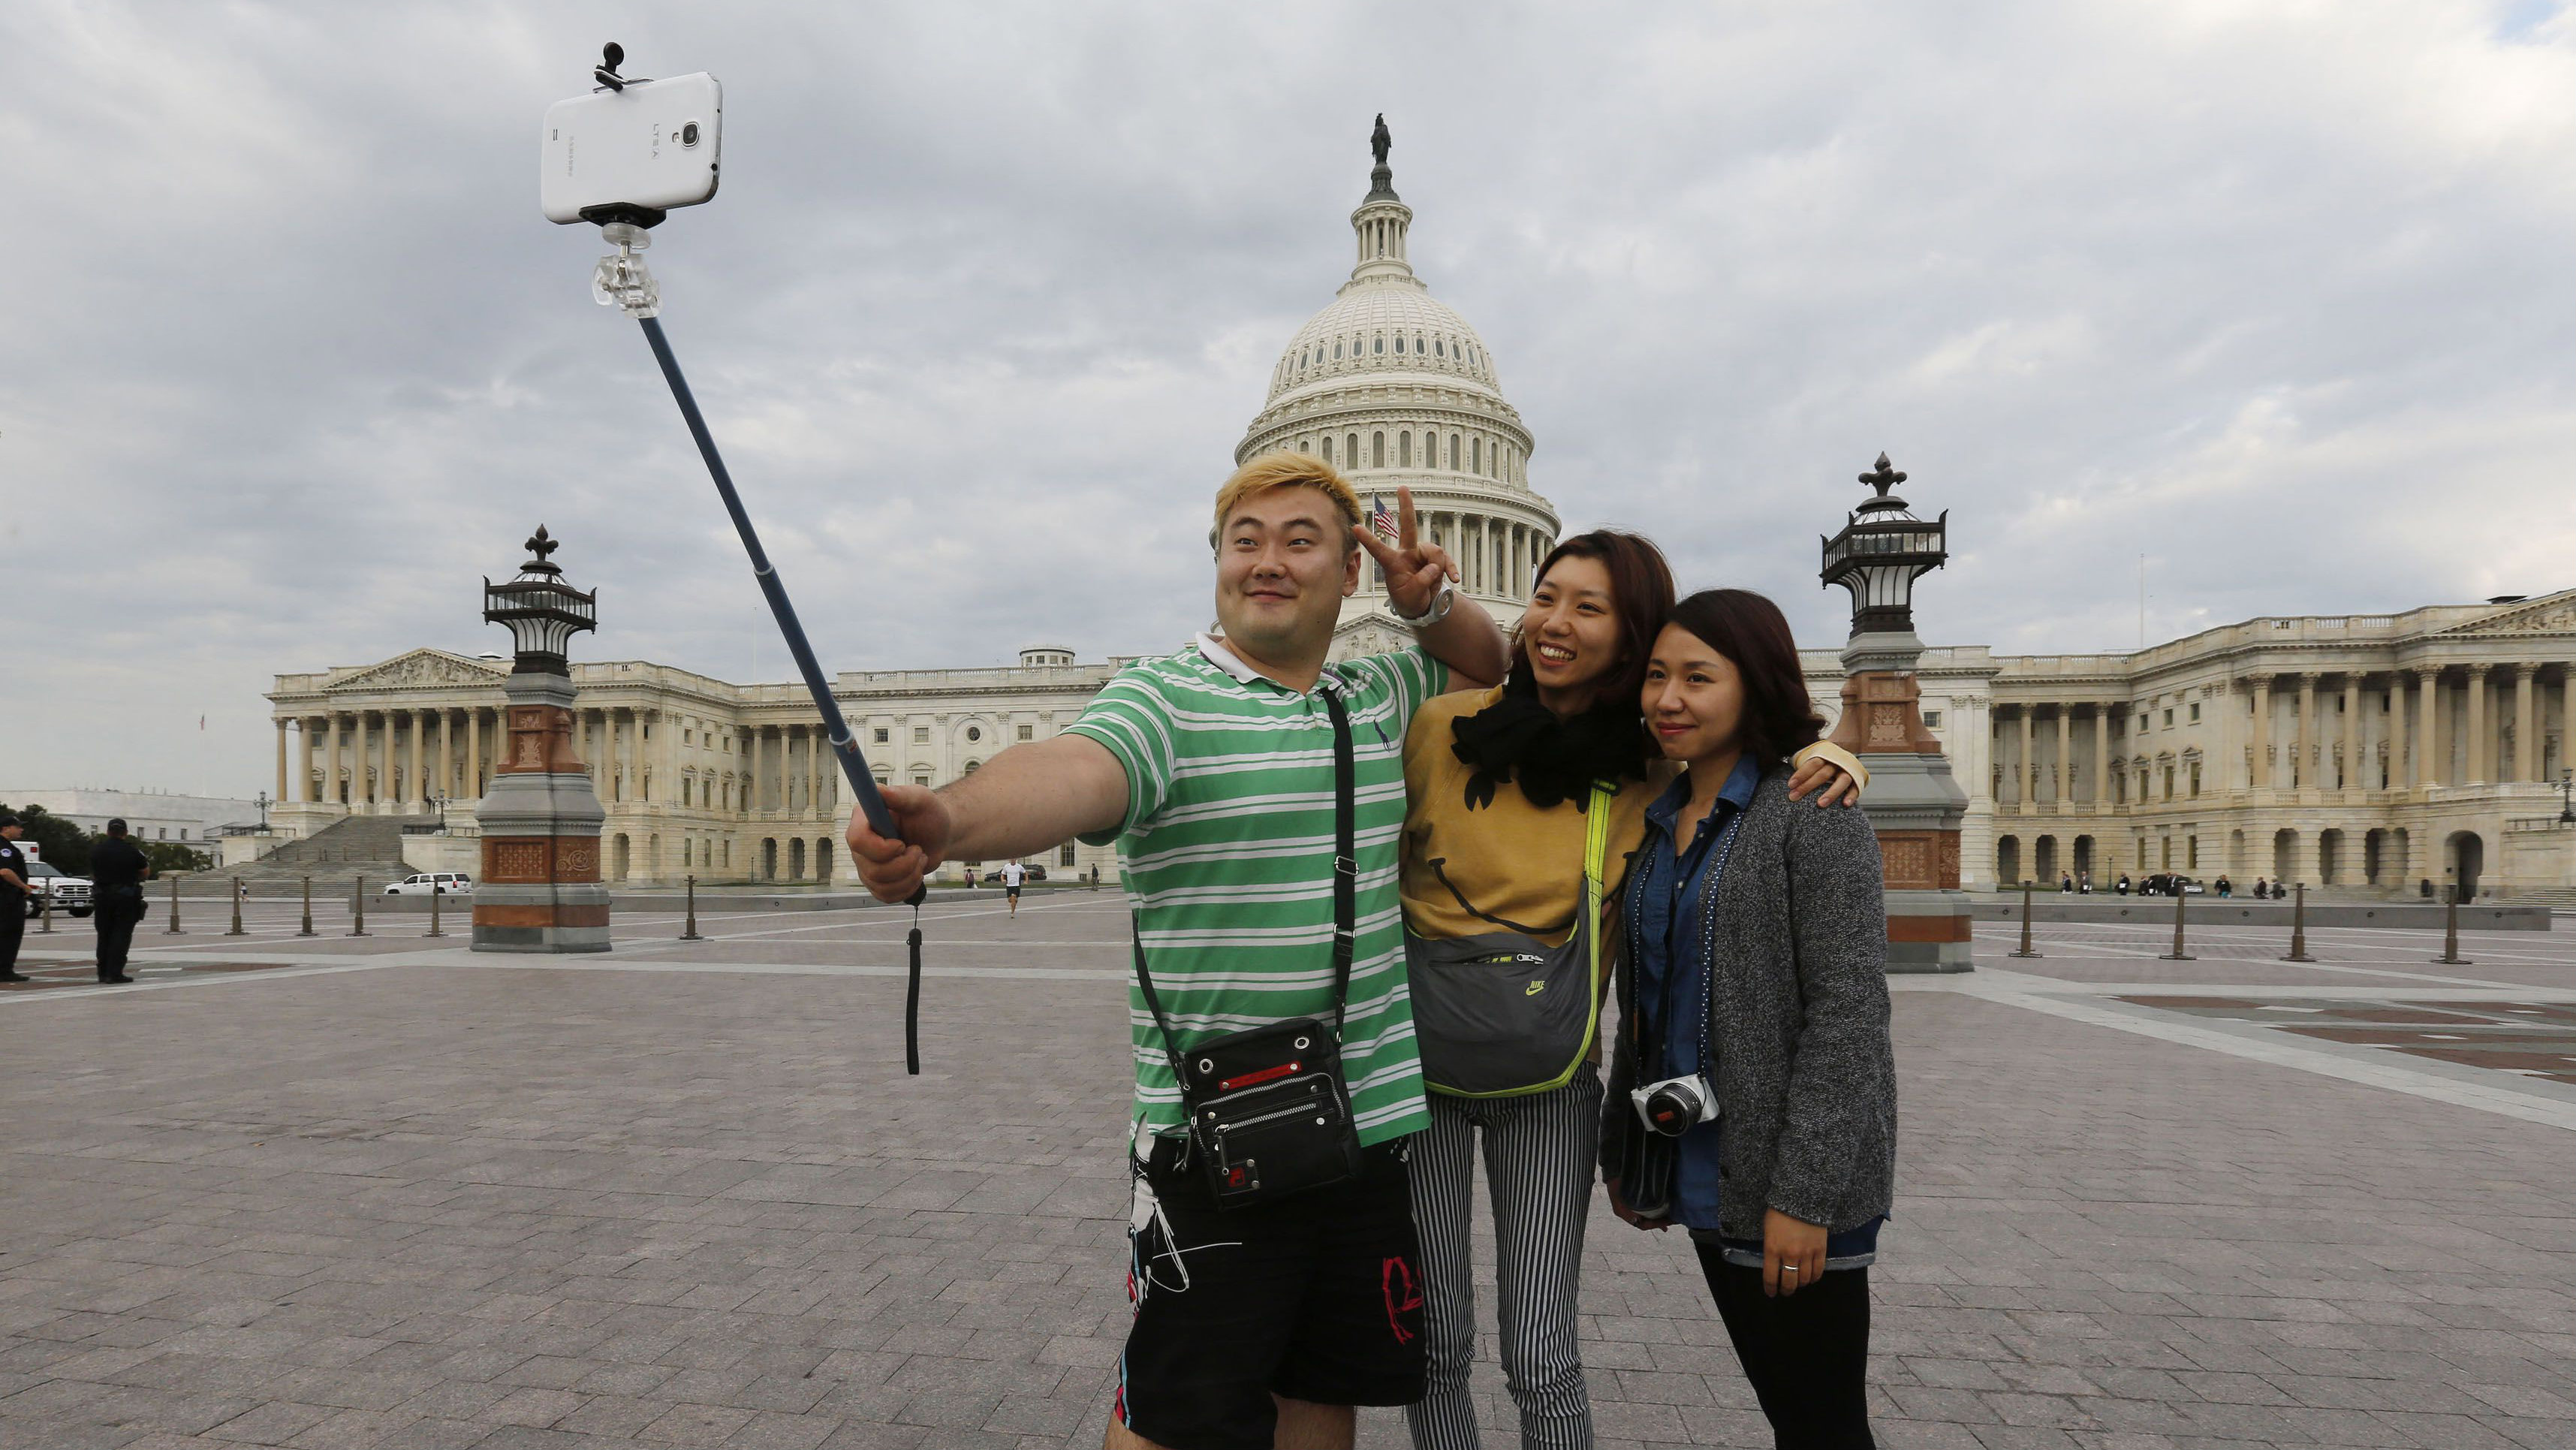 South Korean tourists (L-R) Heemok Ann, Eunyi Ji, and Mijung Jung take their own picture in front of the U.S. Capitol dome on Capitol Hill in Washington after the U.S. government shutdown, October 1, 2013. The U.S. government began a partial shutdown on Tuesday for the first time in 17 years, potentially putting up to 1 million workers on unpaid leave, closing national parks and stalling medical research projects. REUTERS/Larry Downing